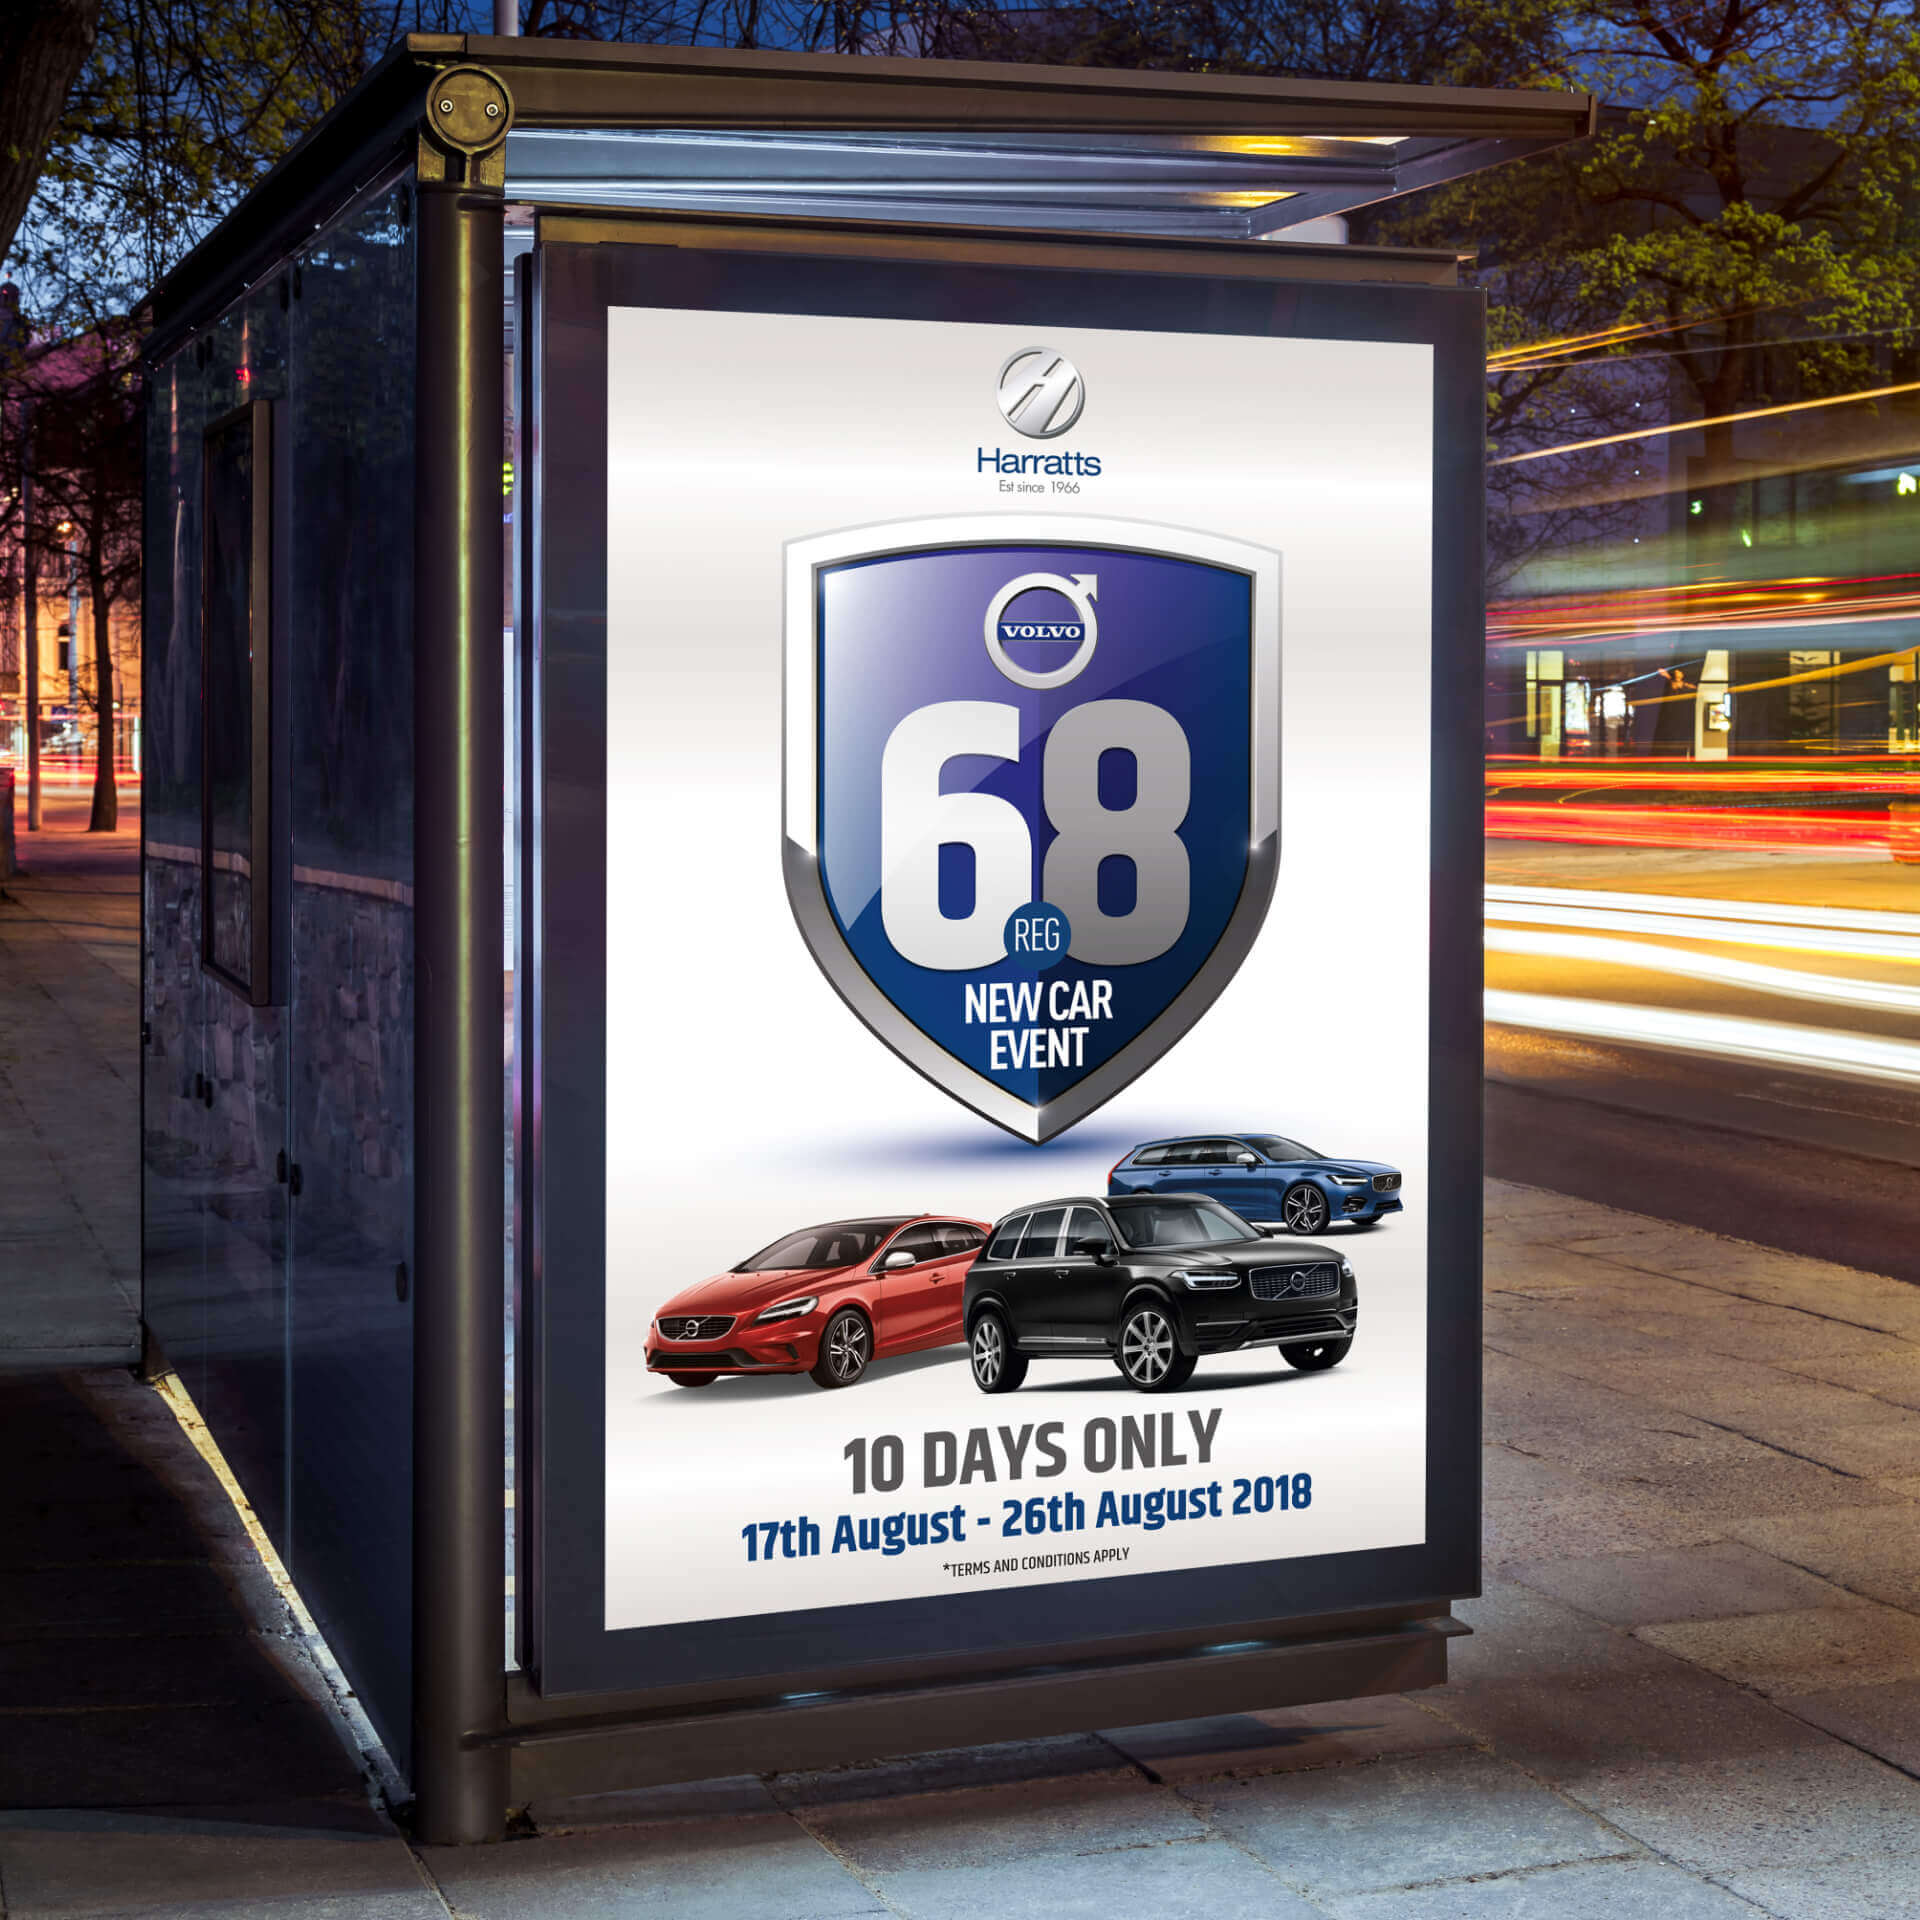 Harratts 68 reg Bus Stop Advertisement